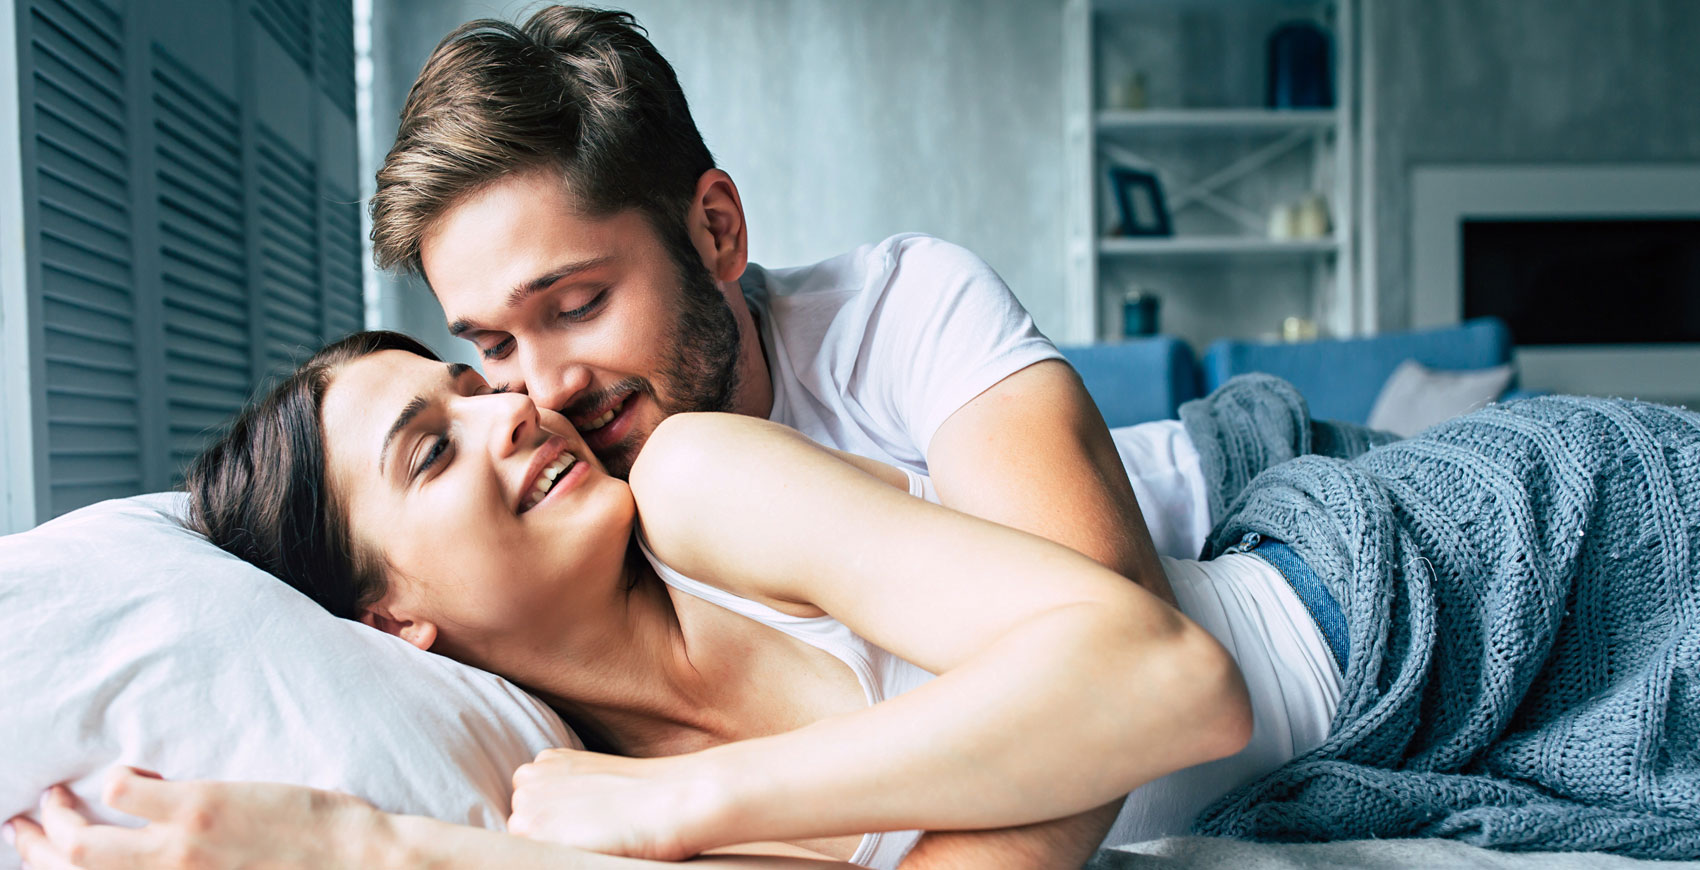 Medication Prescribed For The Treatment Of Erectile Dysfunction